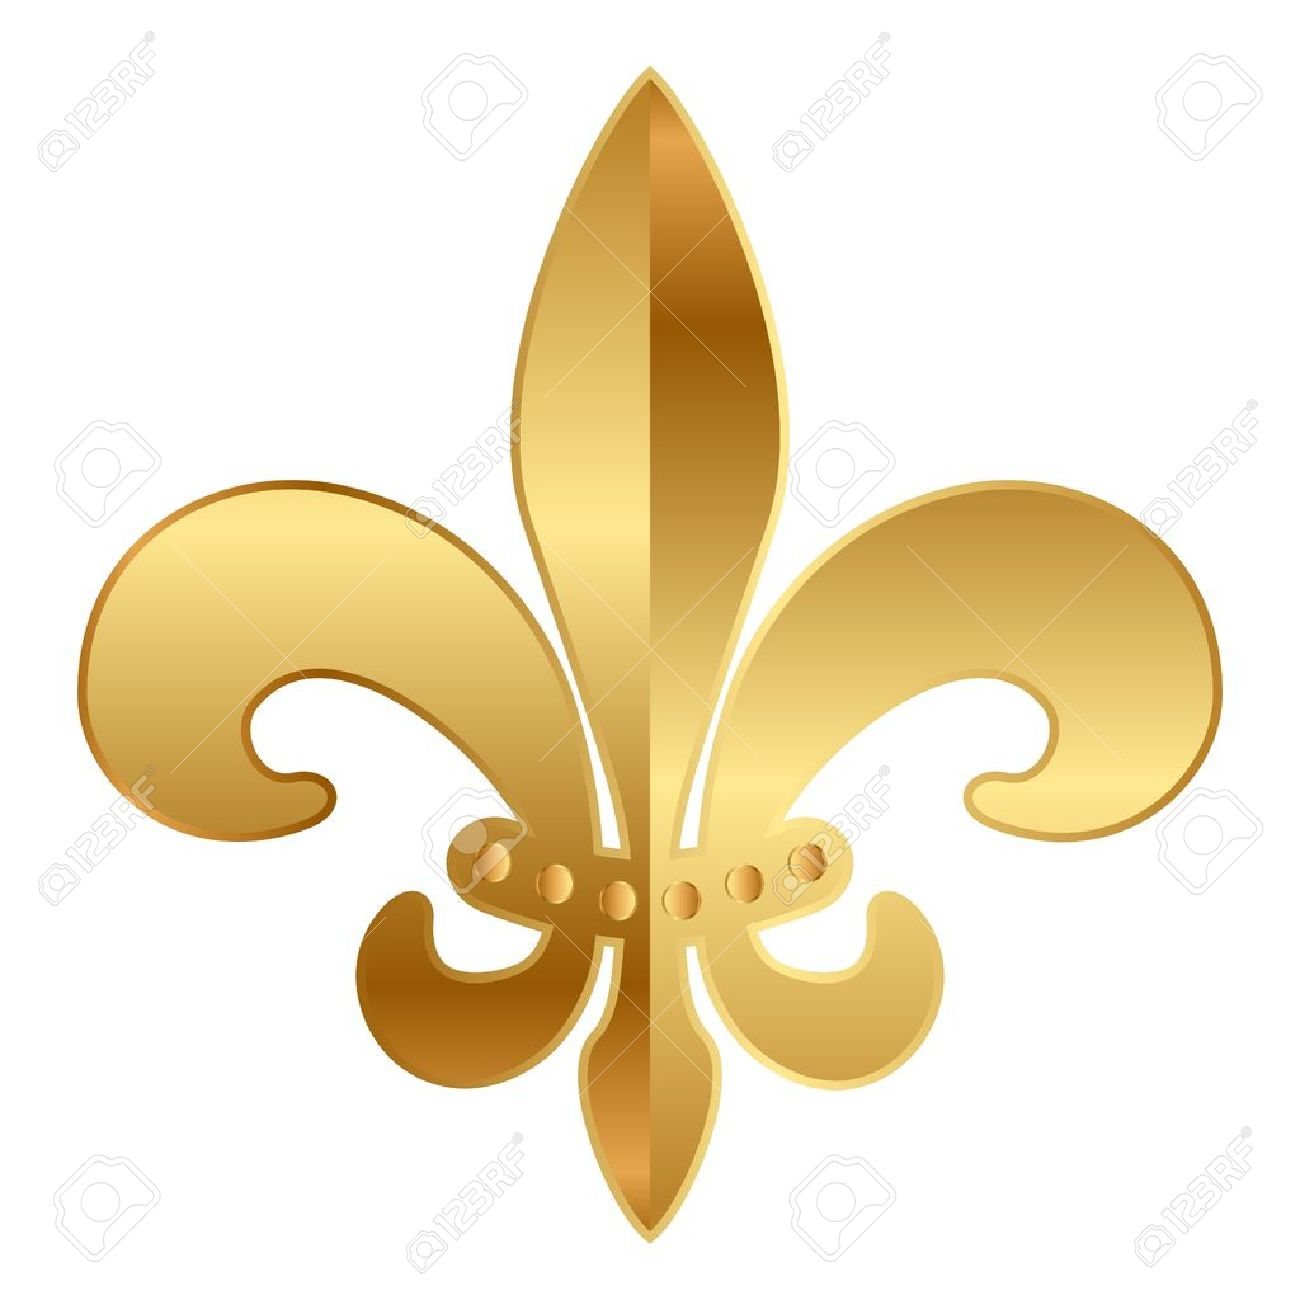 hight resolution of gold fleur de lis ornament stock vector 17968313